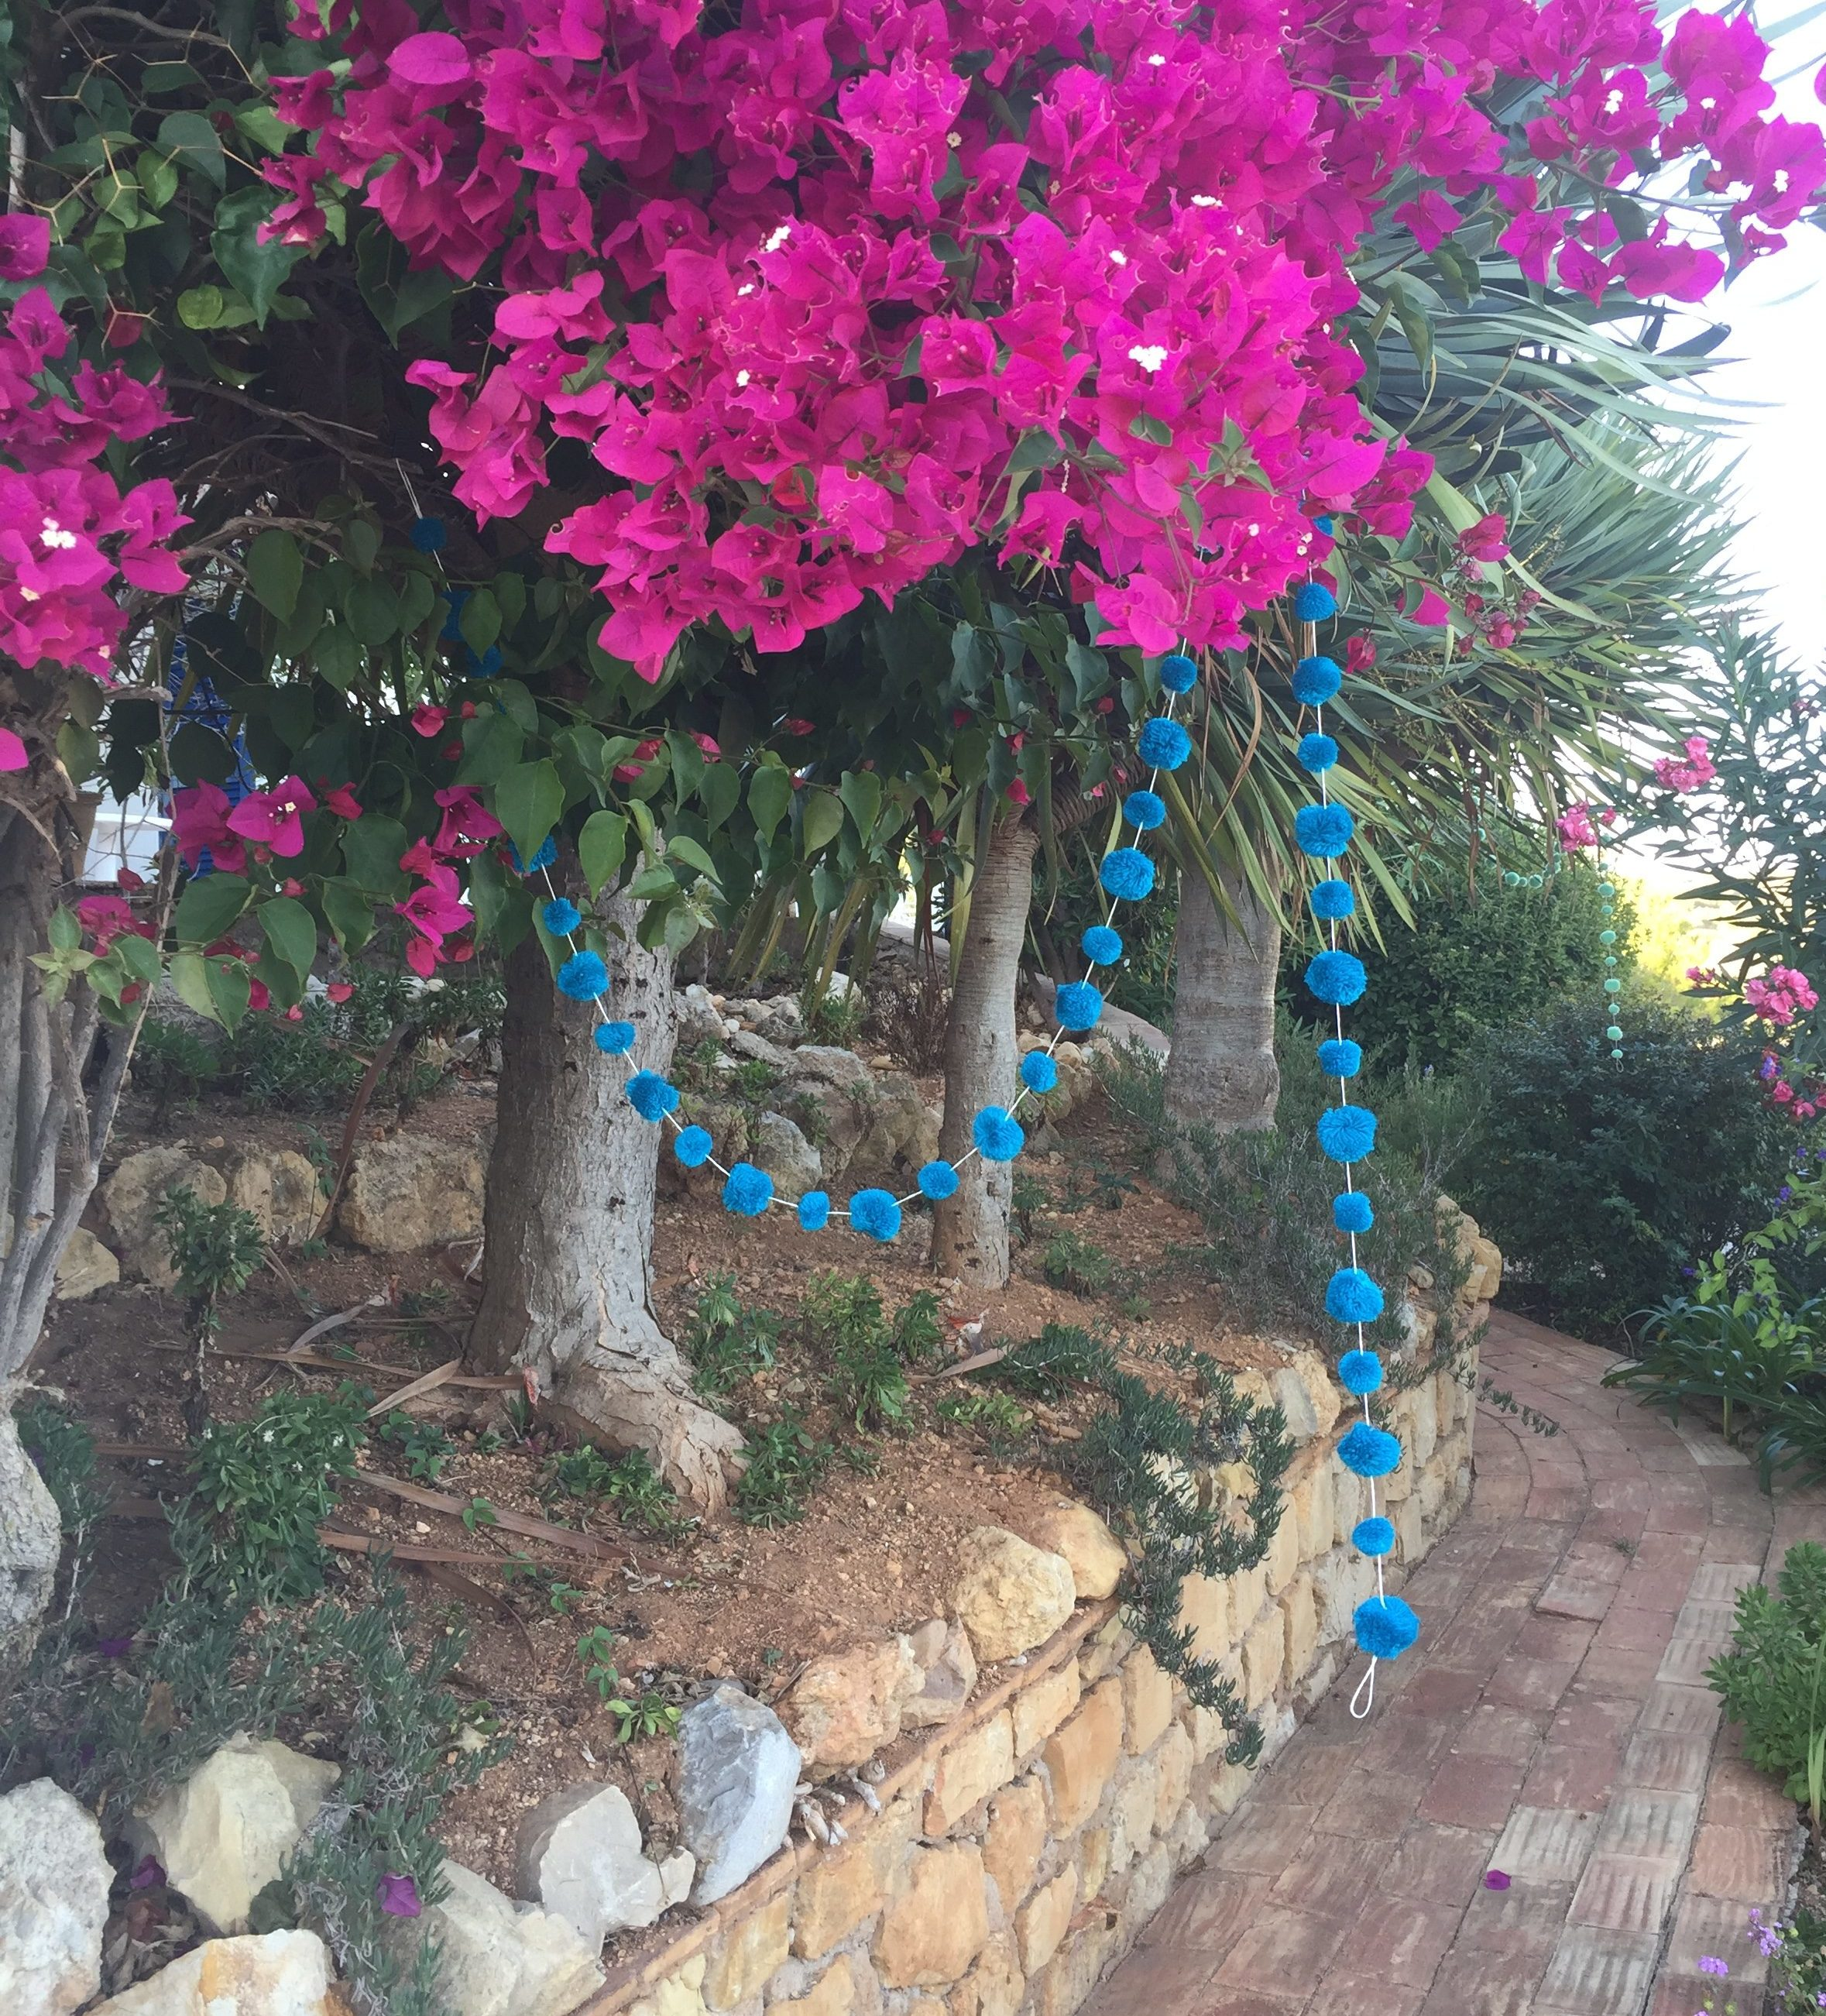 Turquoise Teal Pom Pom Garland Hanging in Pink tree